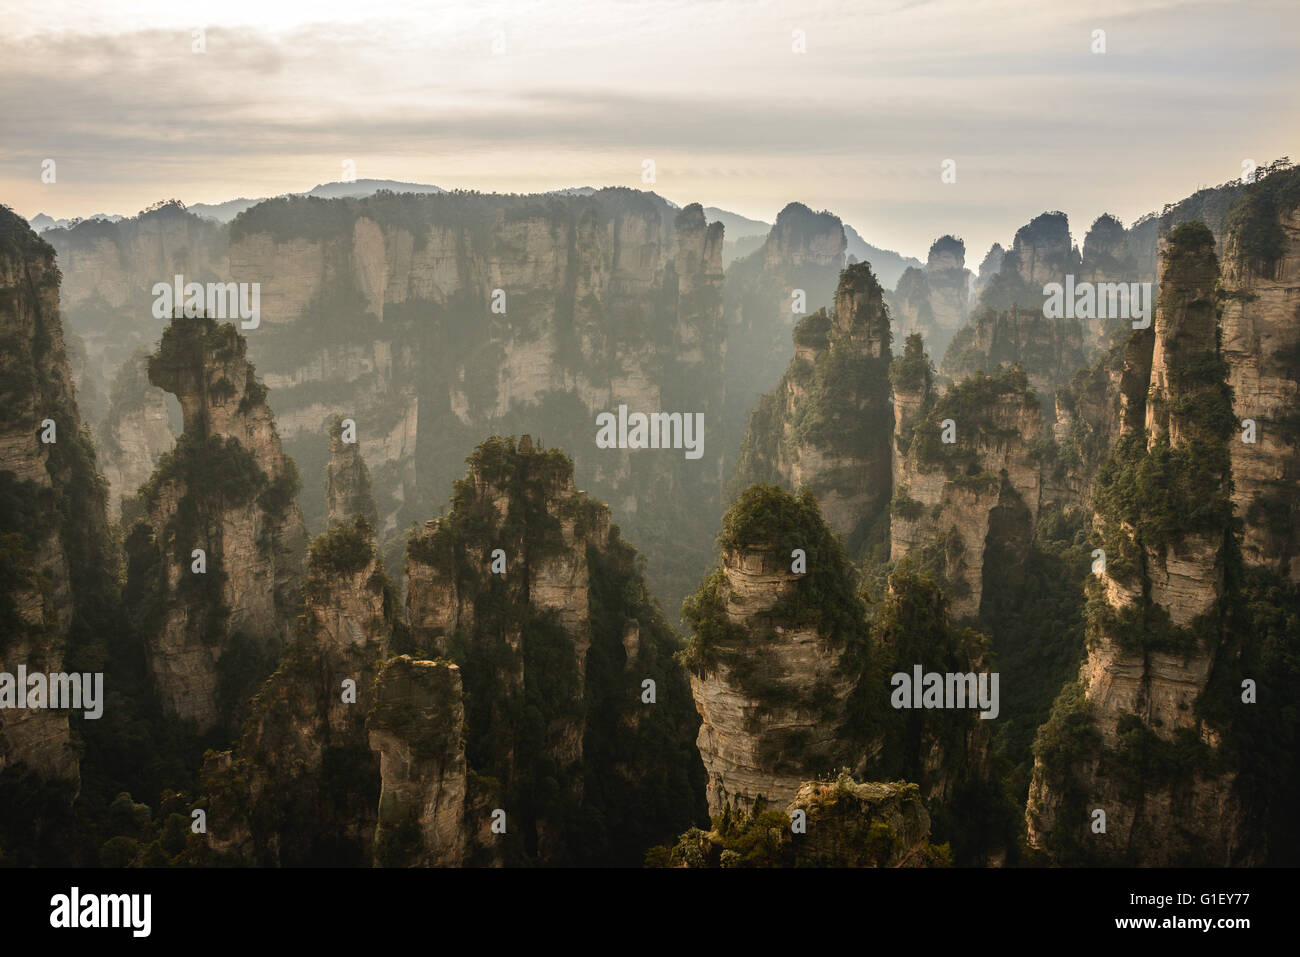 Zhangjiajie national forest park in Central China. Famed for inspiring Avatar - Stock Image